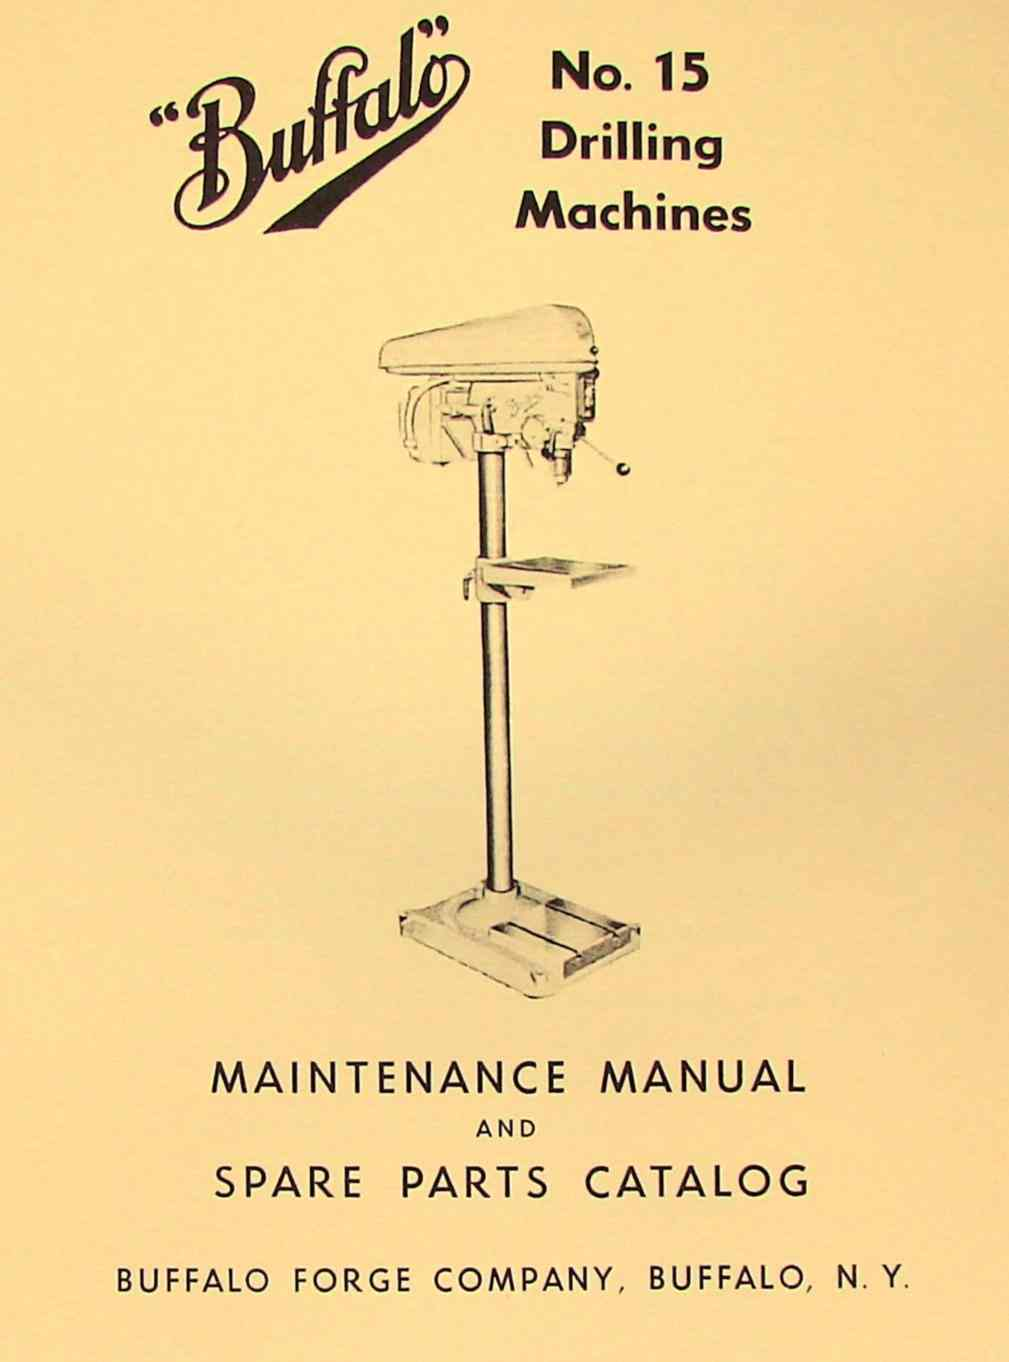 15 Drilling Machine Drill Press Instructions & Parts Manual | Ozark Tool  Manuals & Books